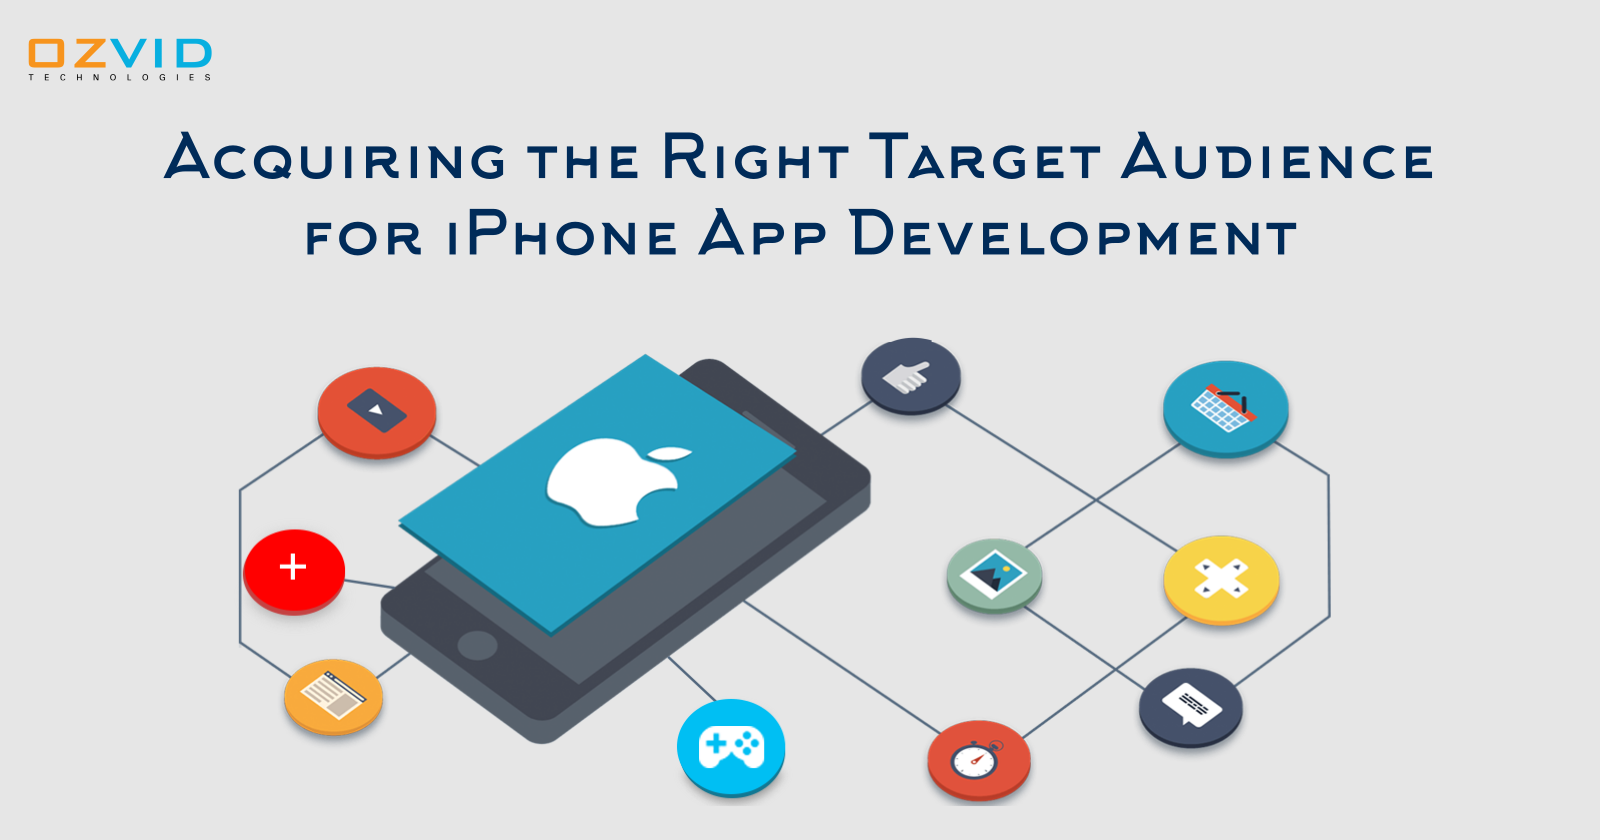 Acquiring the Right Target Audience for iPhone App Development